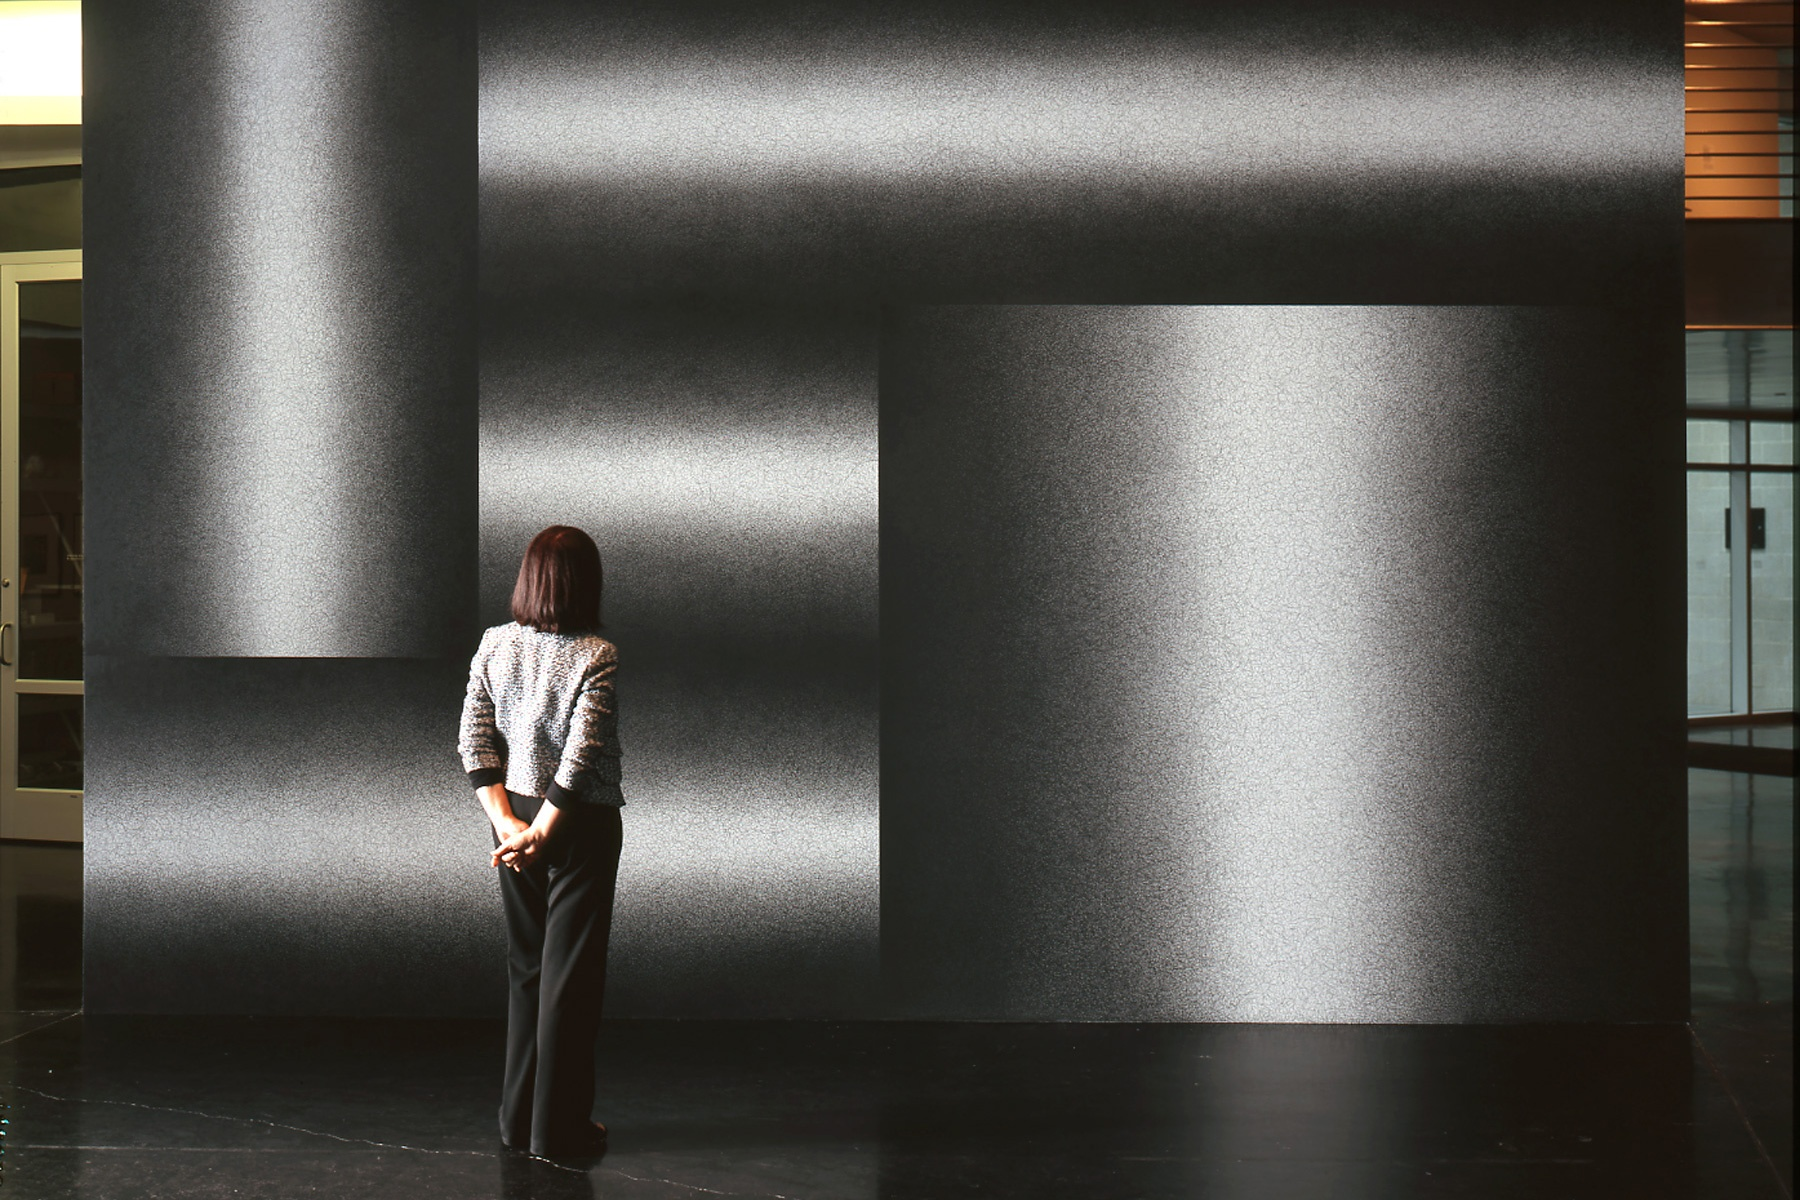 A lone female stands facing a wall decorated with multiple sections of black and white gradients.